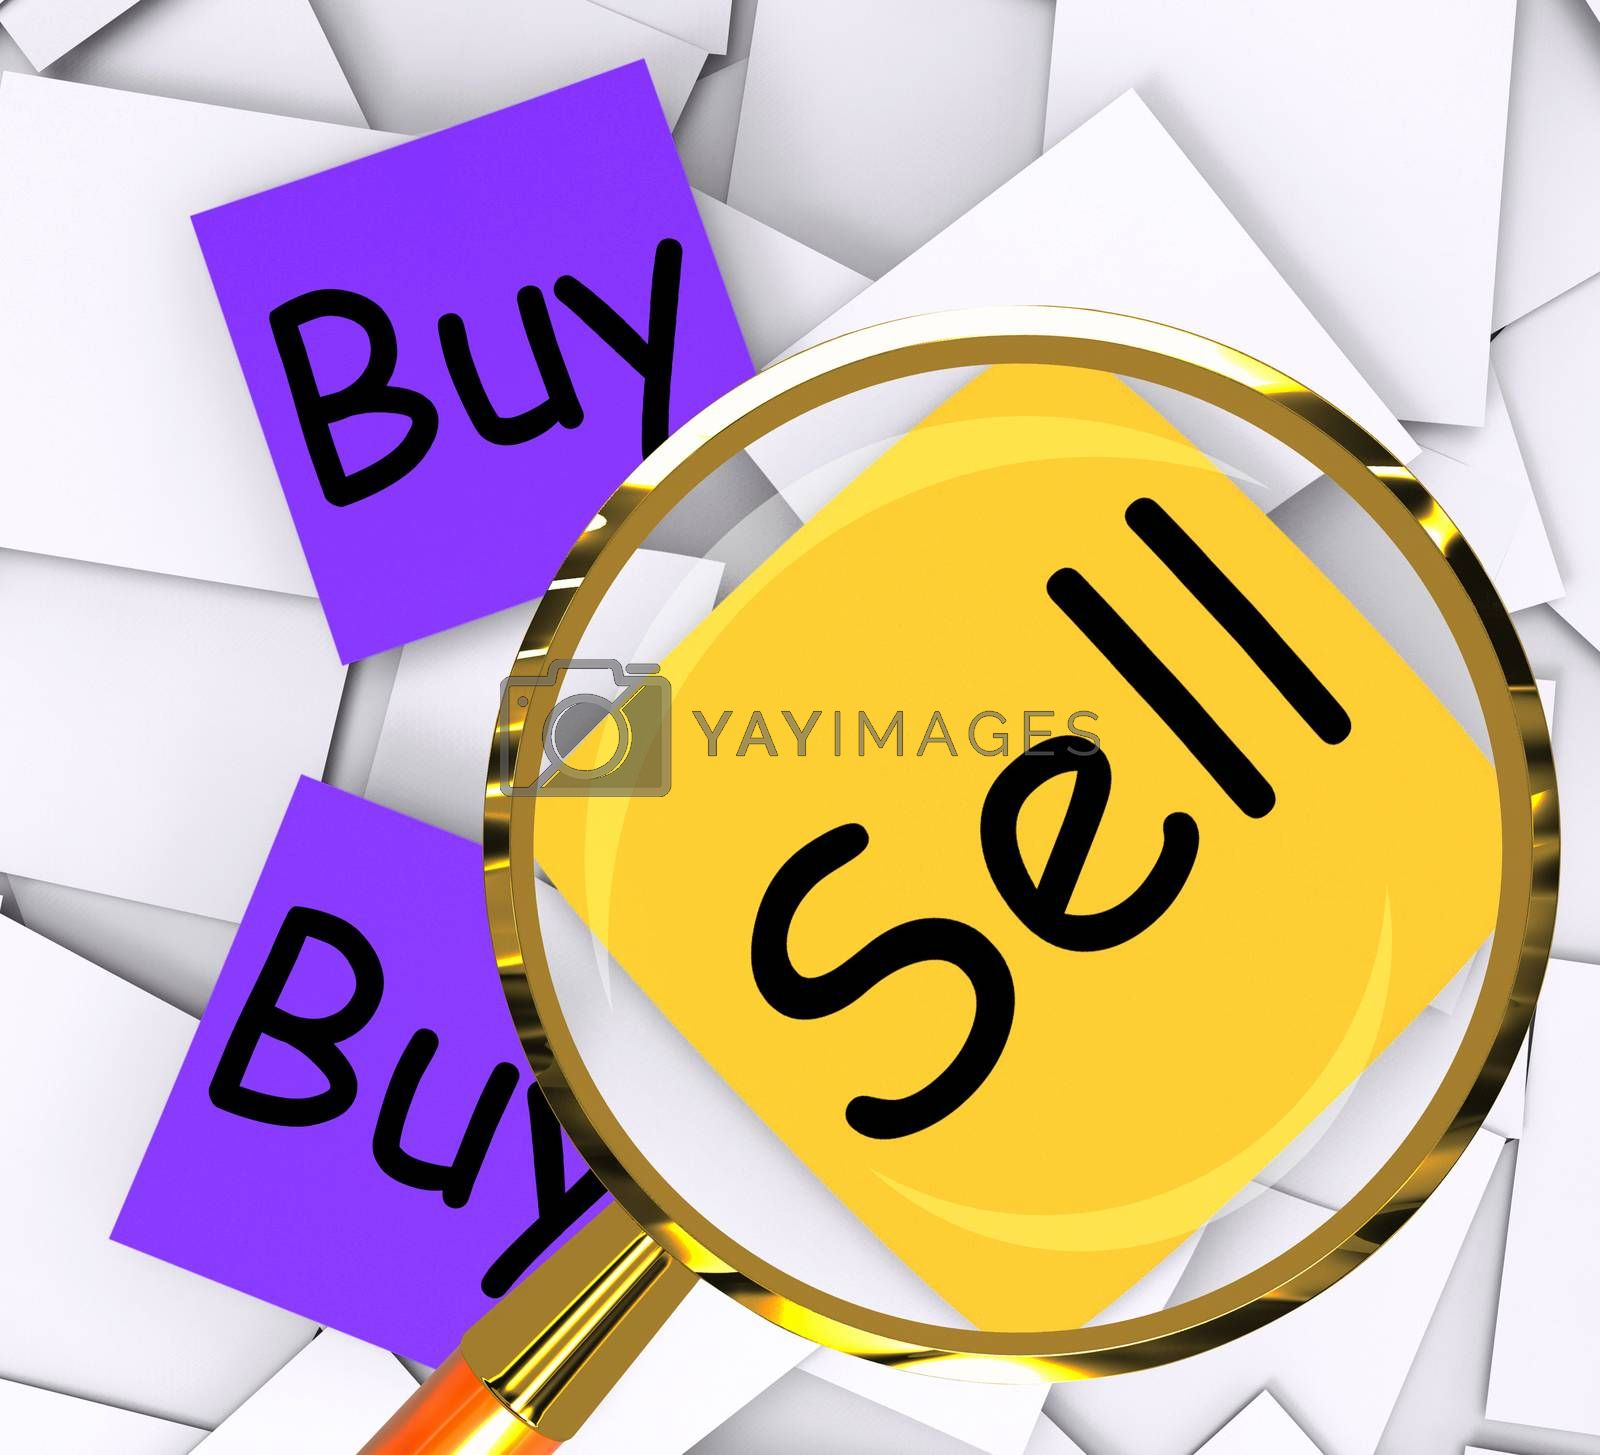 Buy Sell Post-It Papers Mean Shopping Retail And Trade by stuartmiles